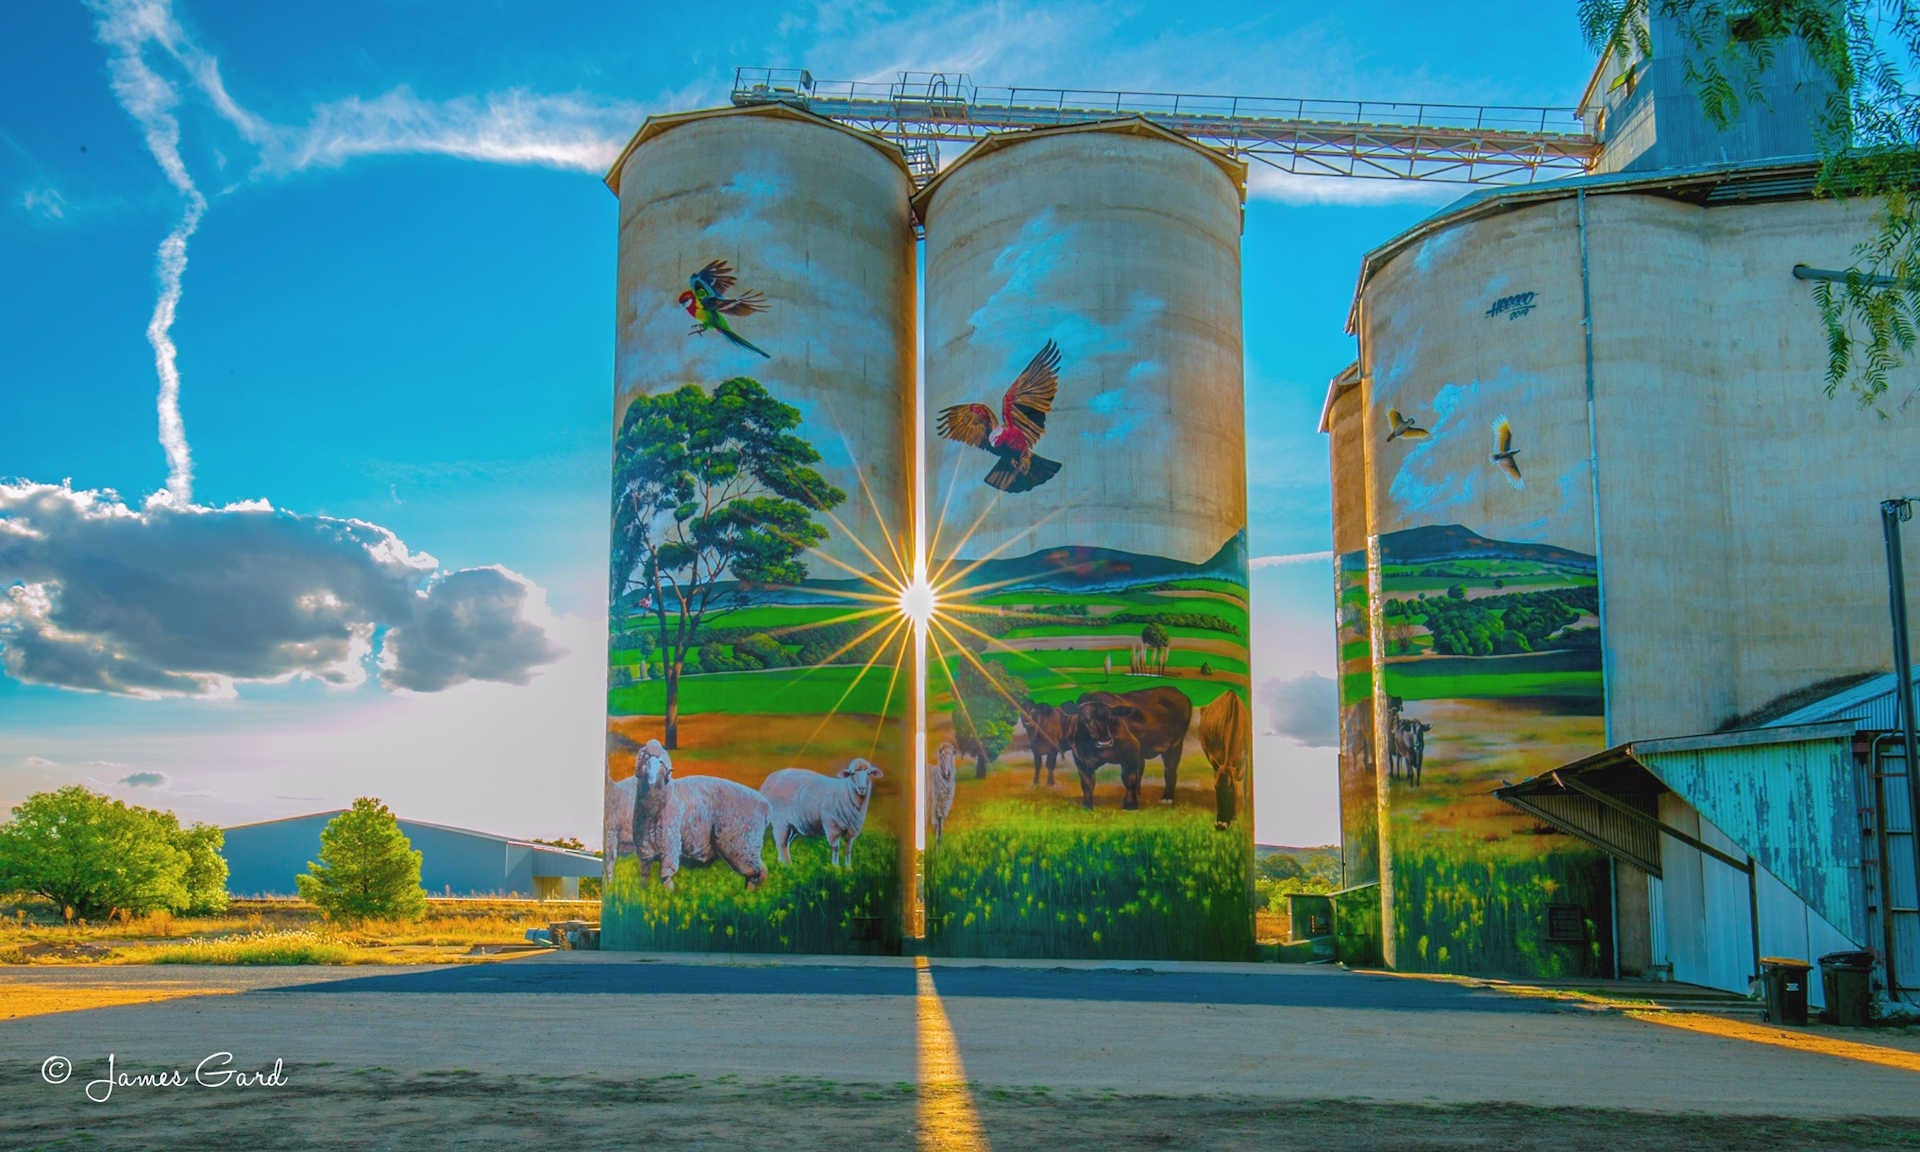 Grenfell Silos, New South Wales, Photo by James Gard - Artist Heesco